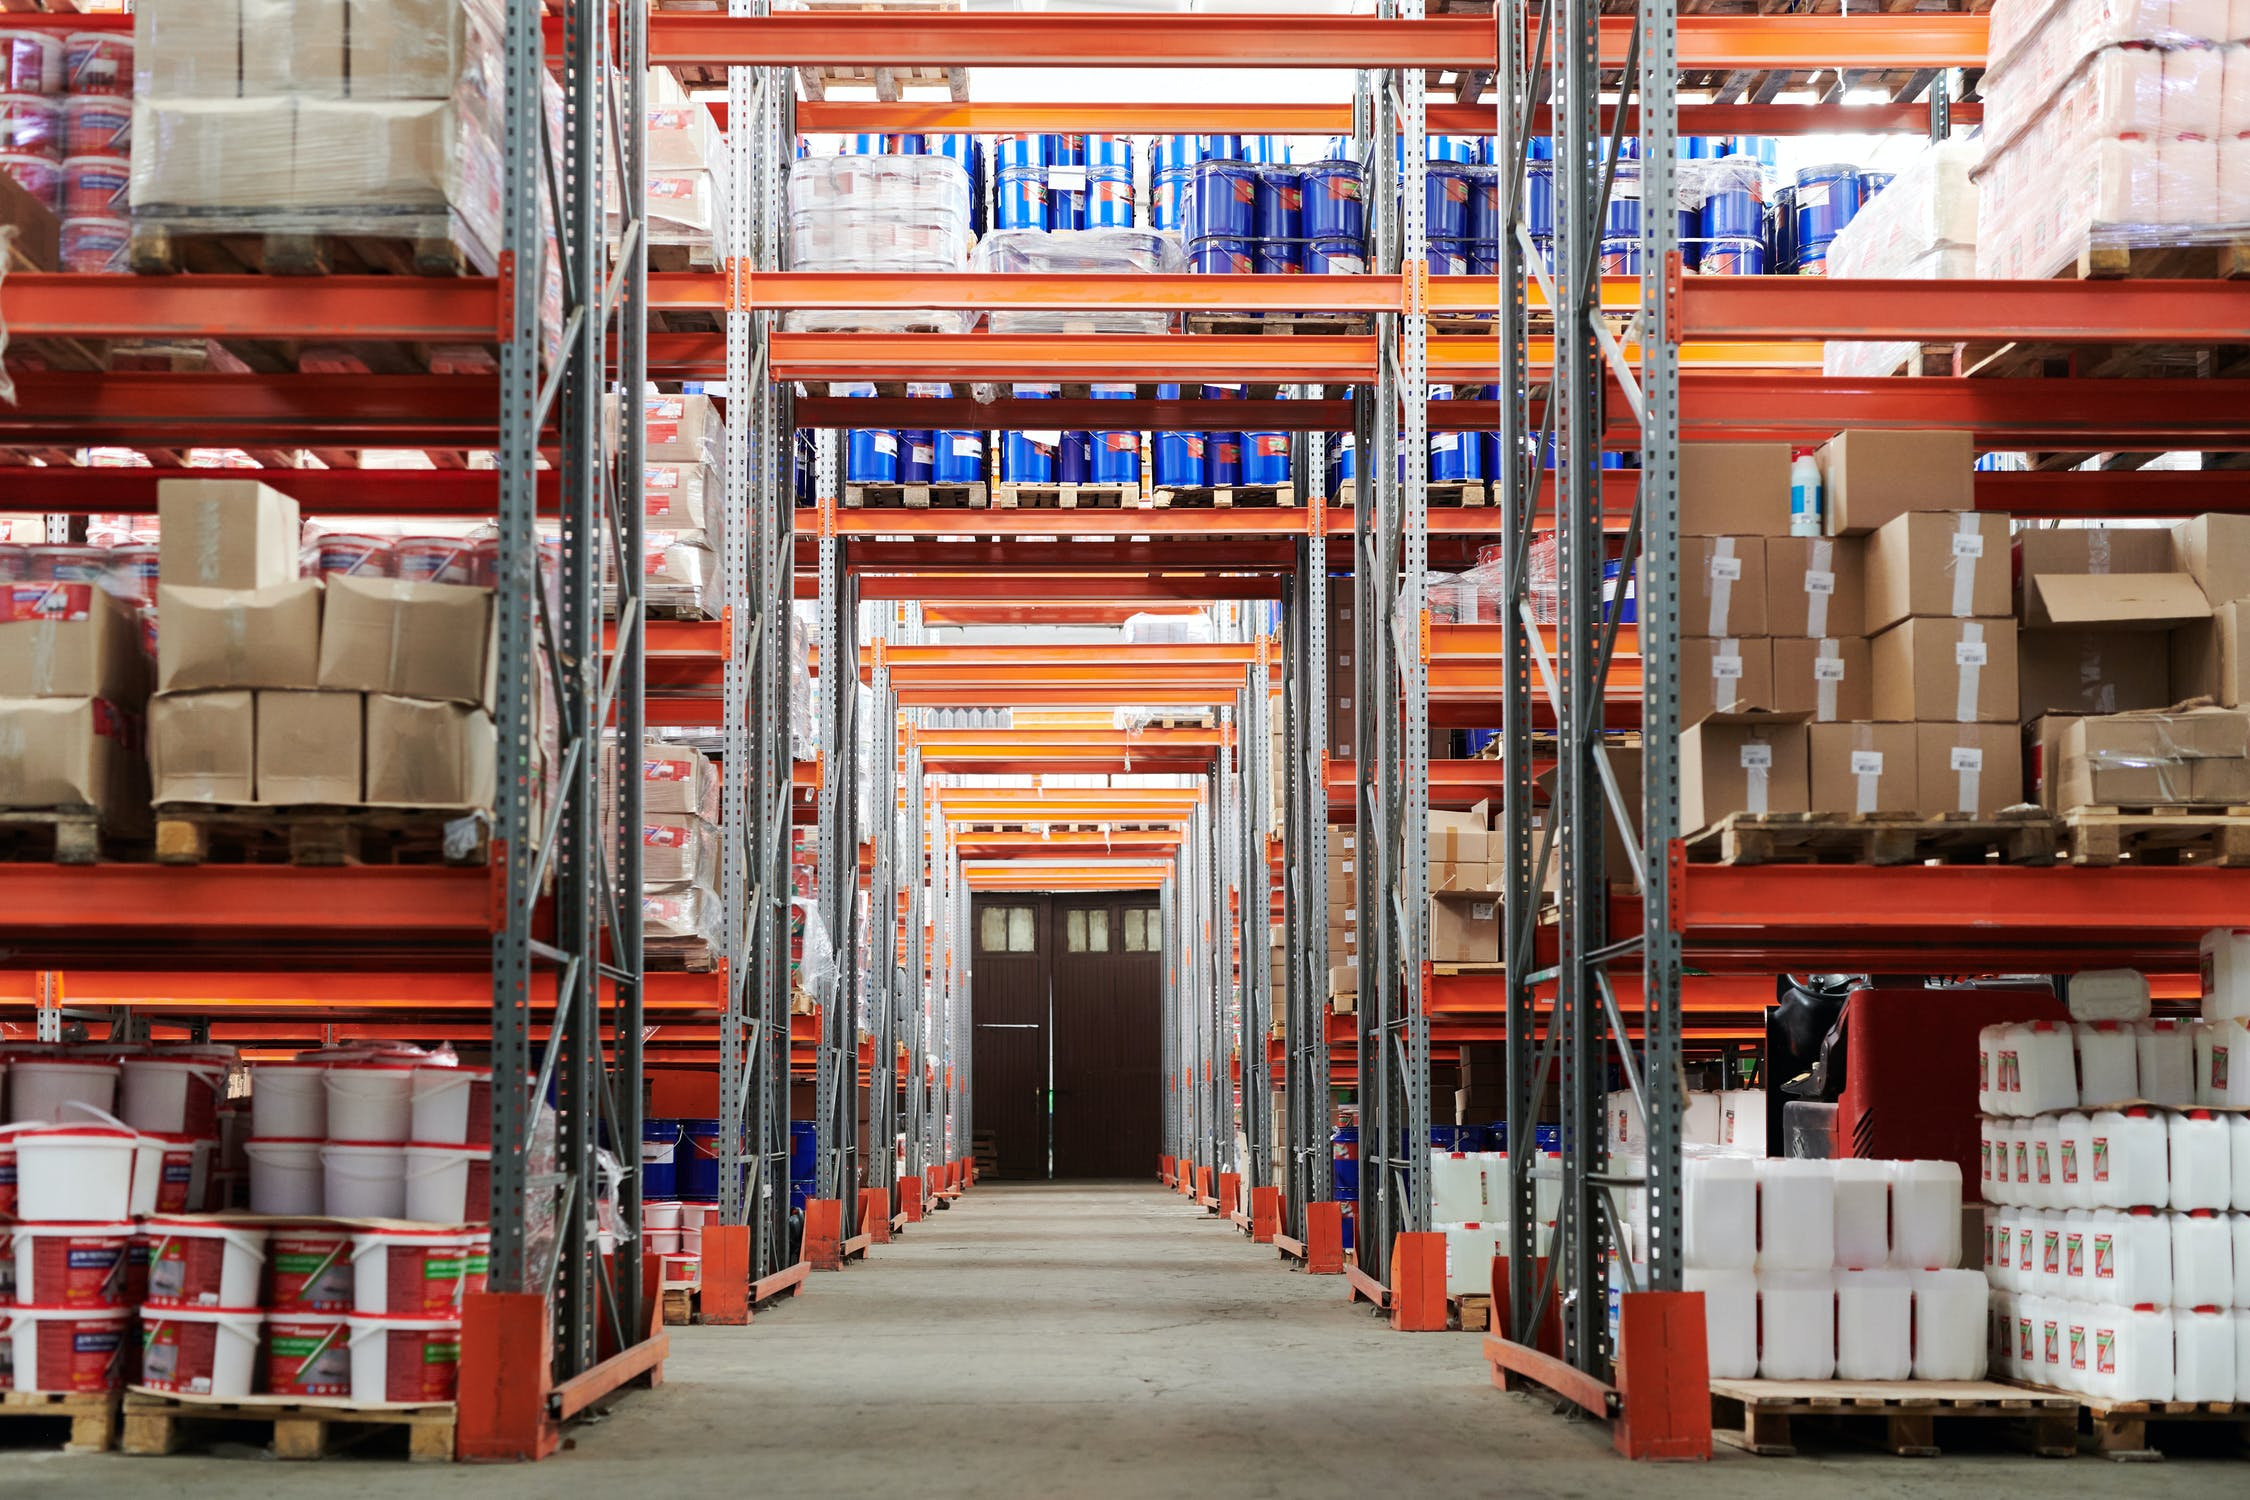 How to Calculate Inventory Turnover Ratio for Small Business